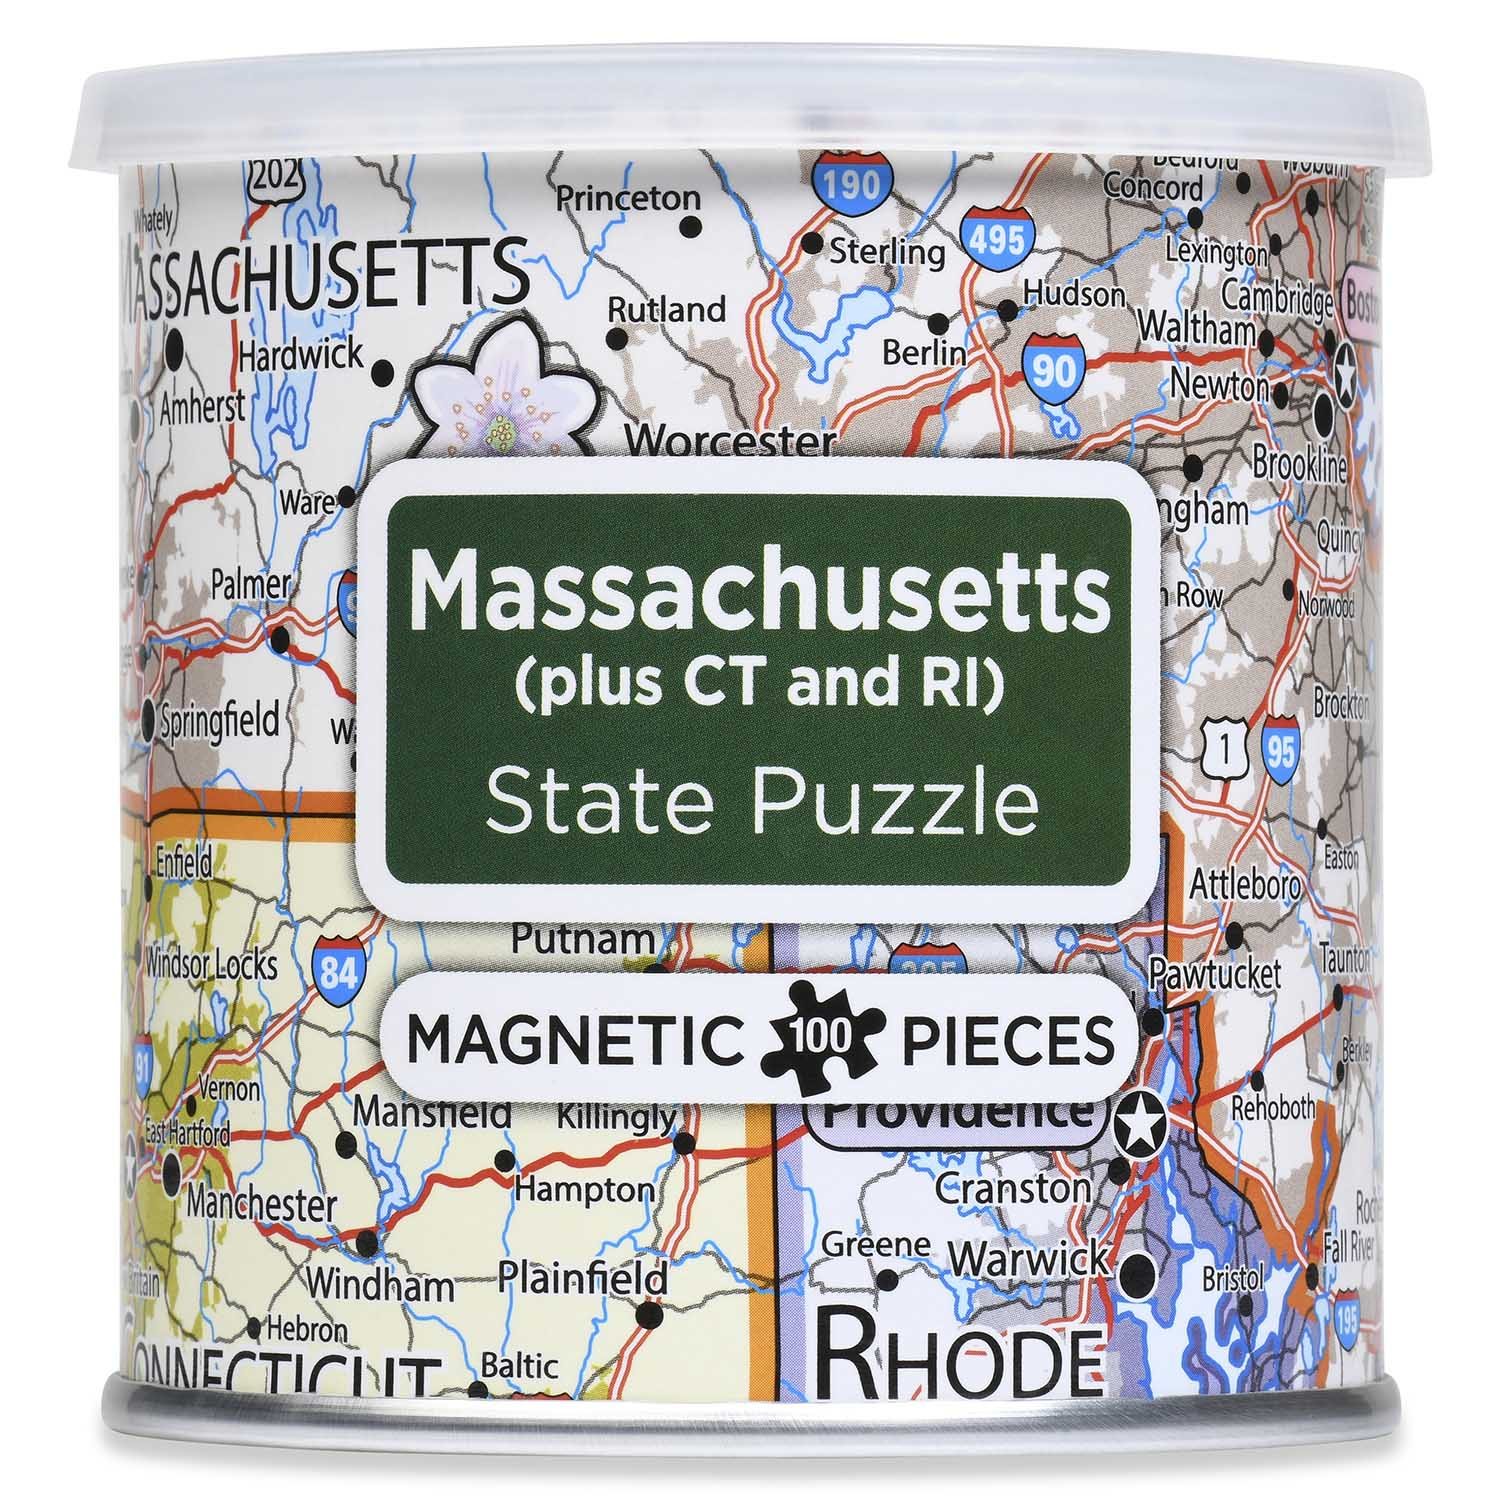 City Magnetic Puzzle Massachusetts, Connecticut, Rhode Island Cities Jigsaw Puzzle